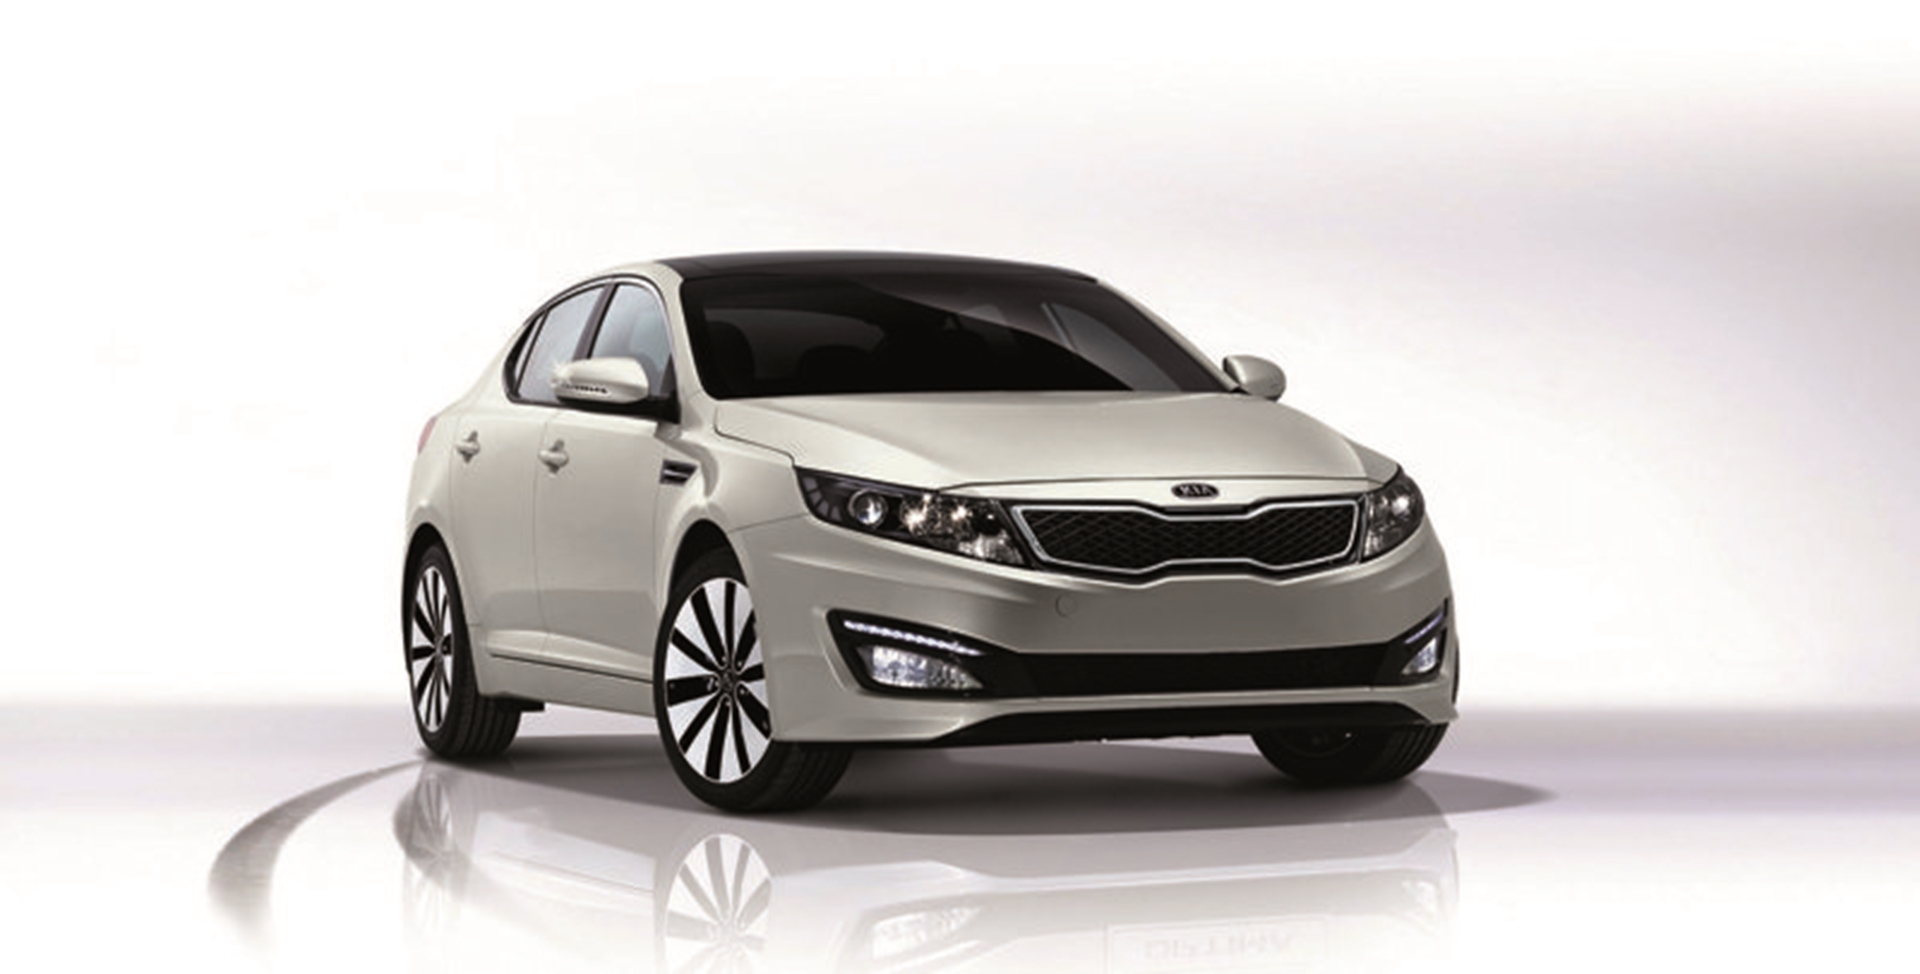 KIA Front View Optima